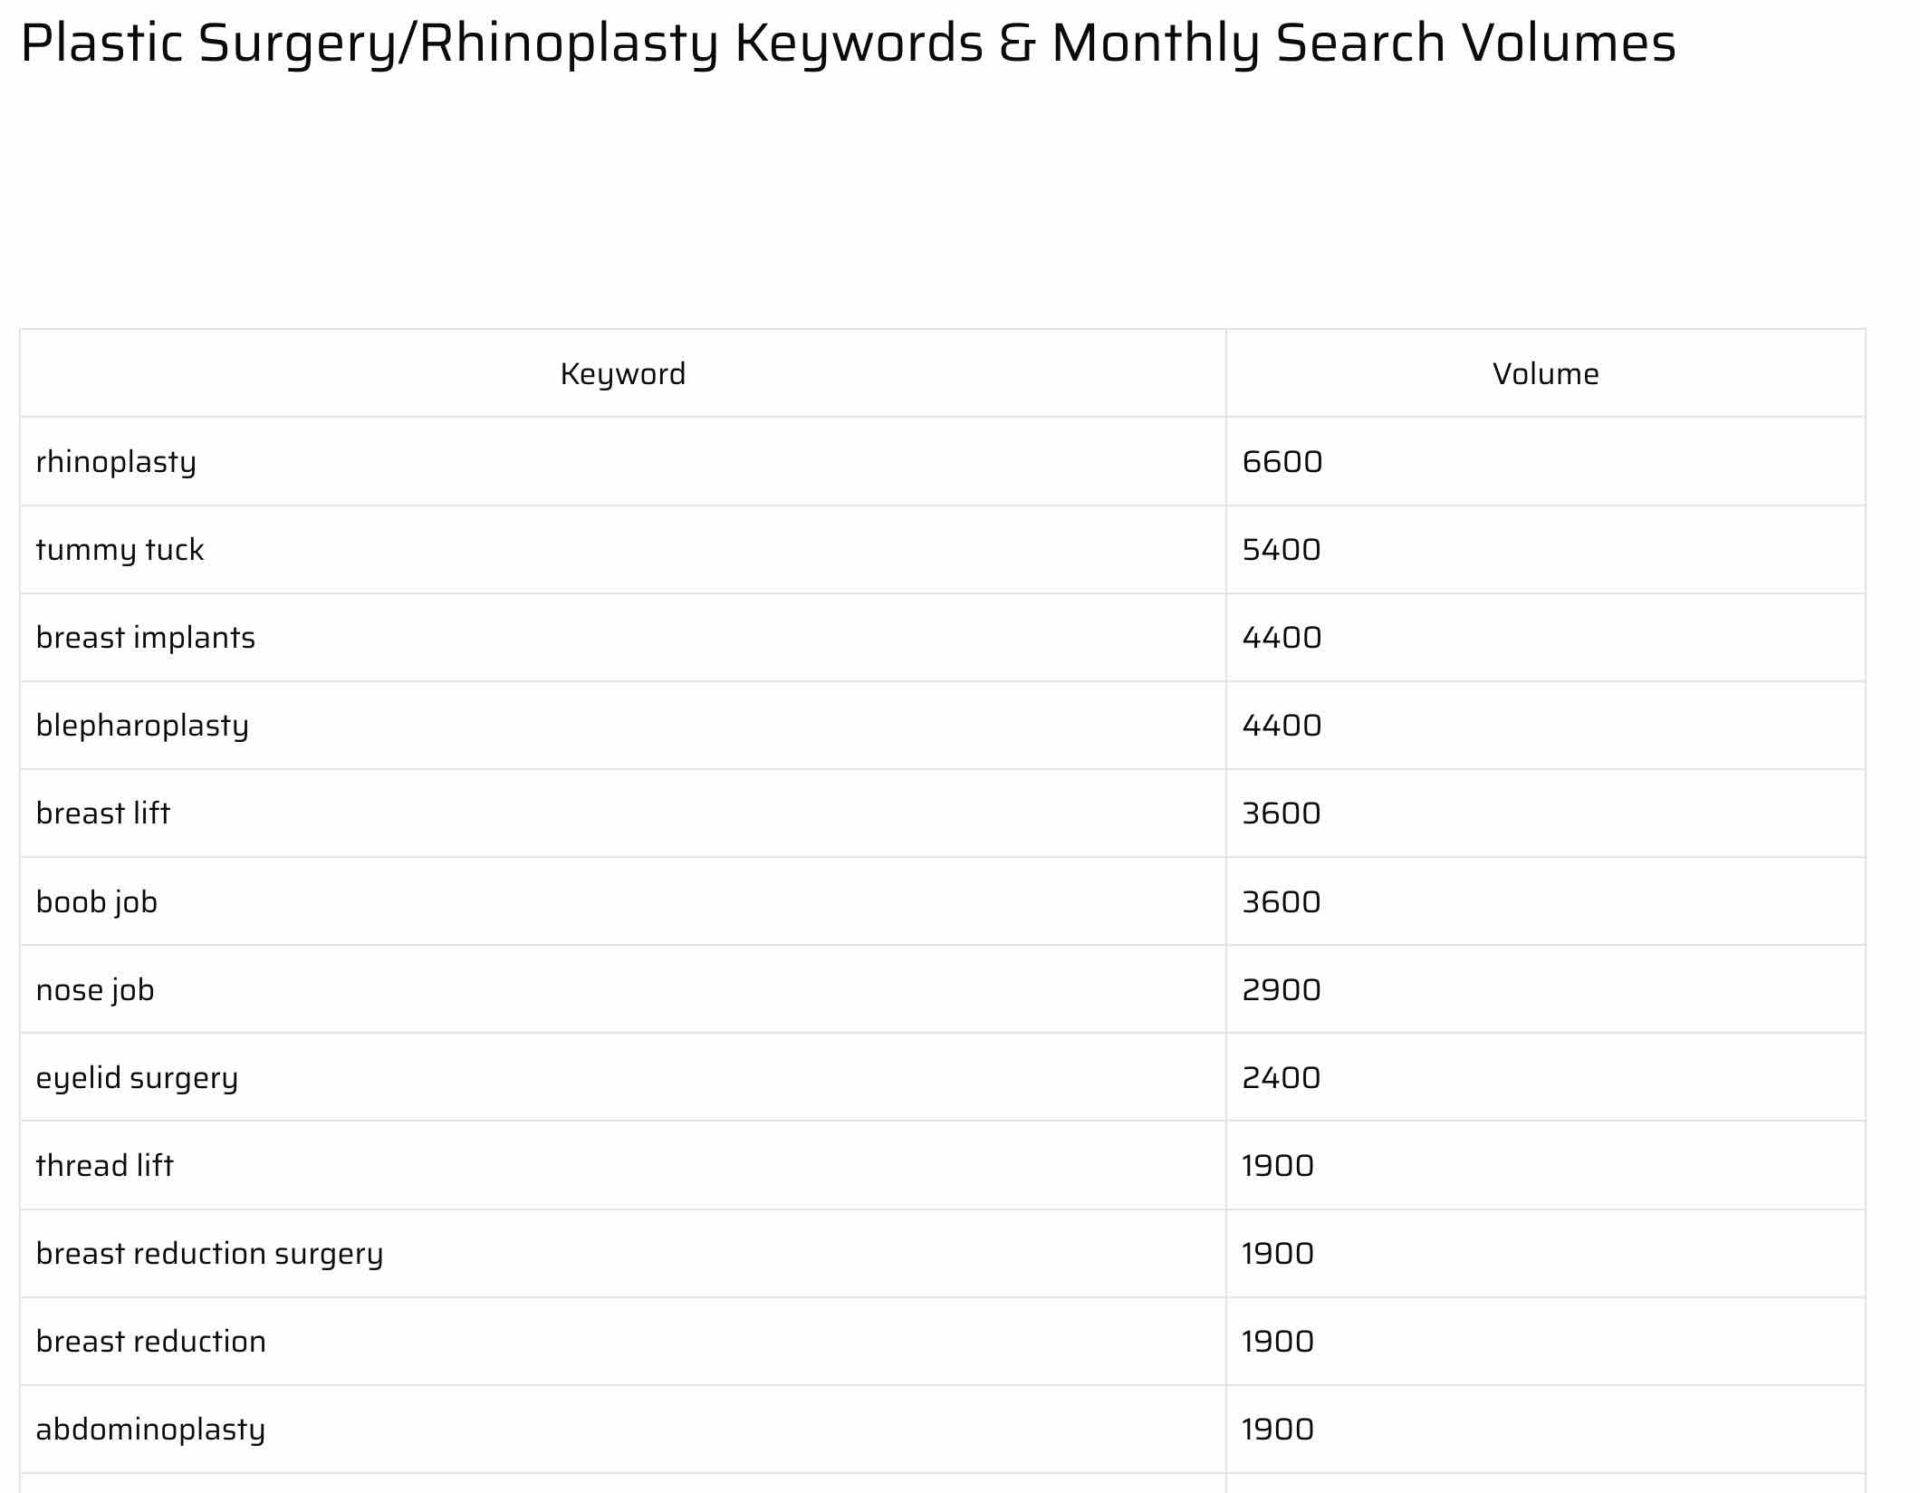 search volumes for plastic surgery keyword